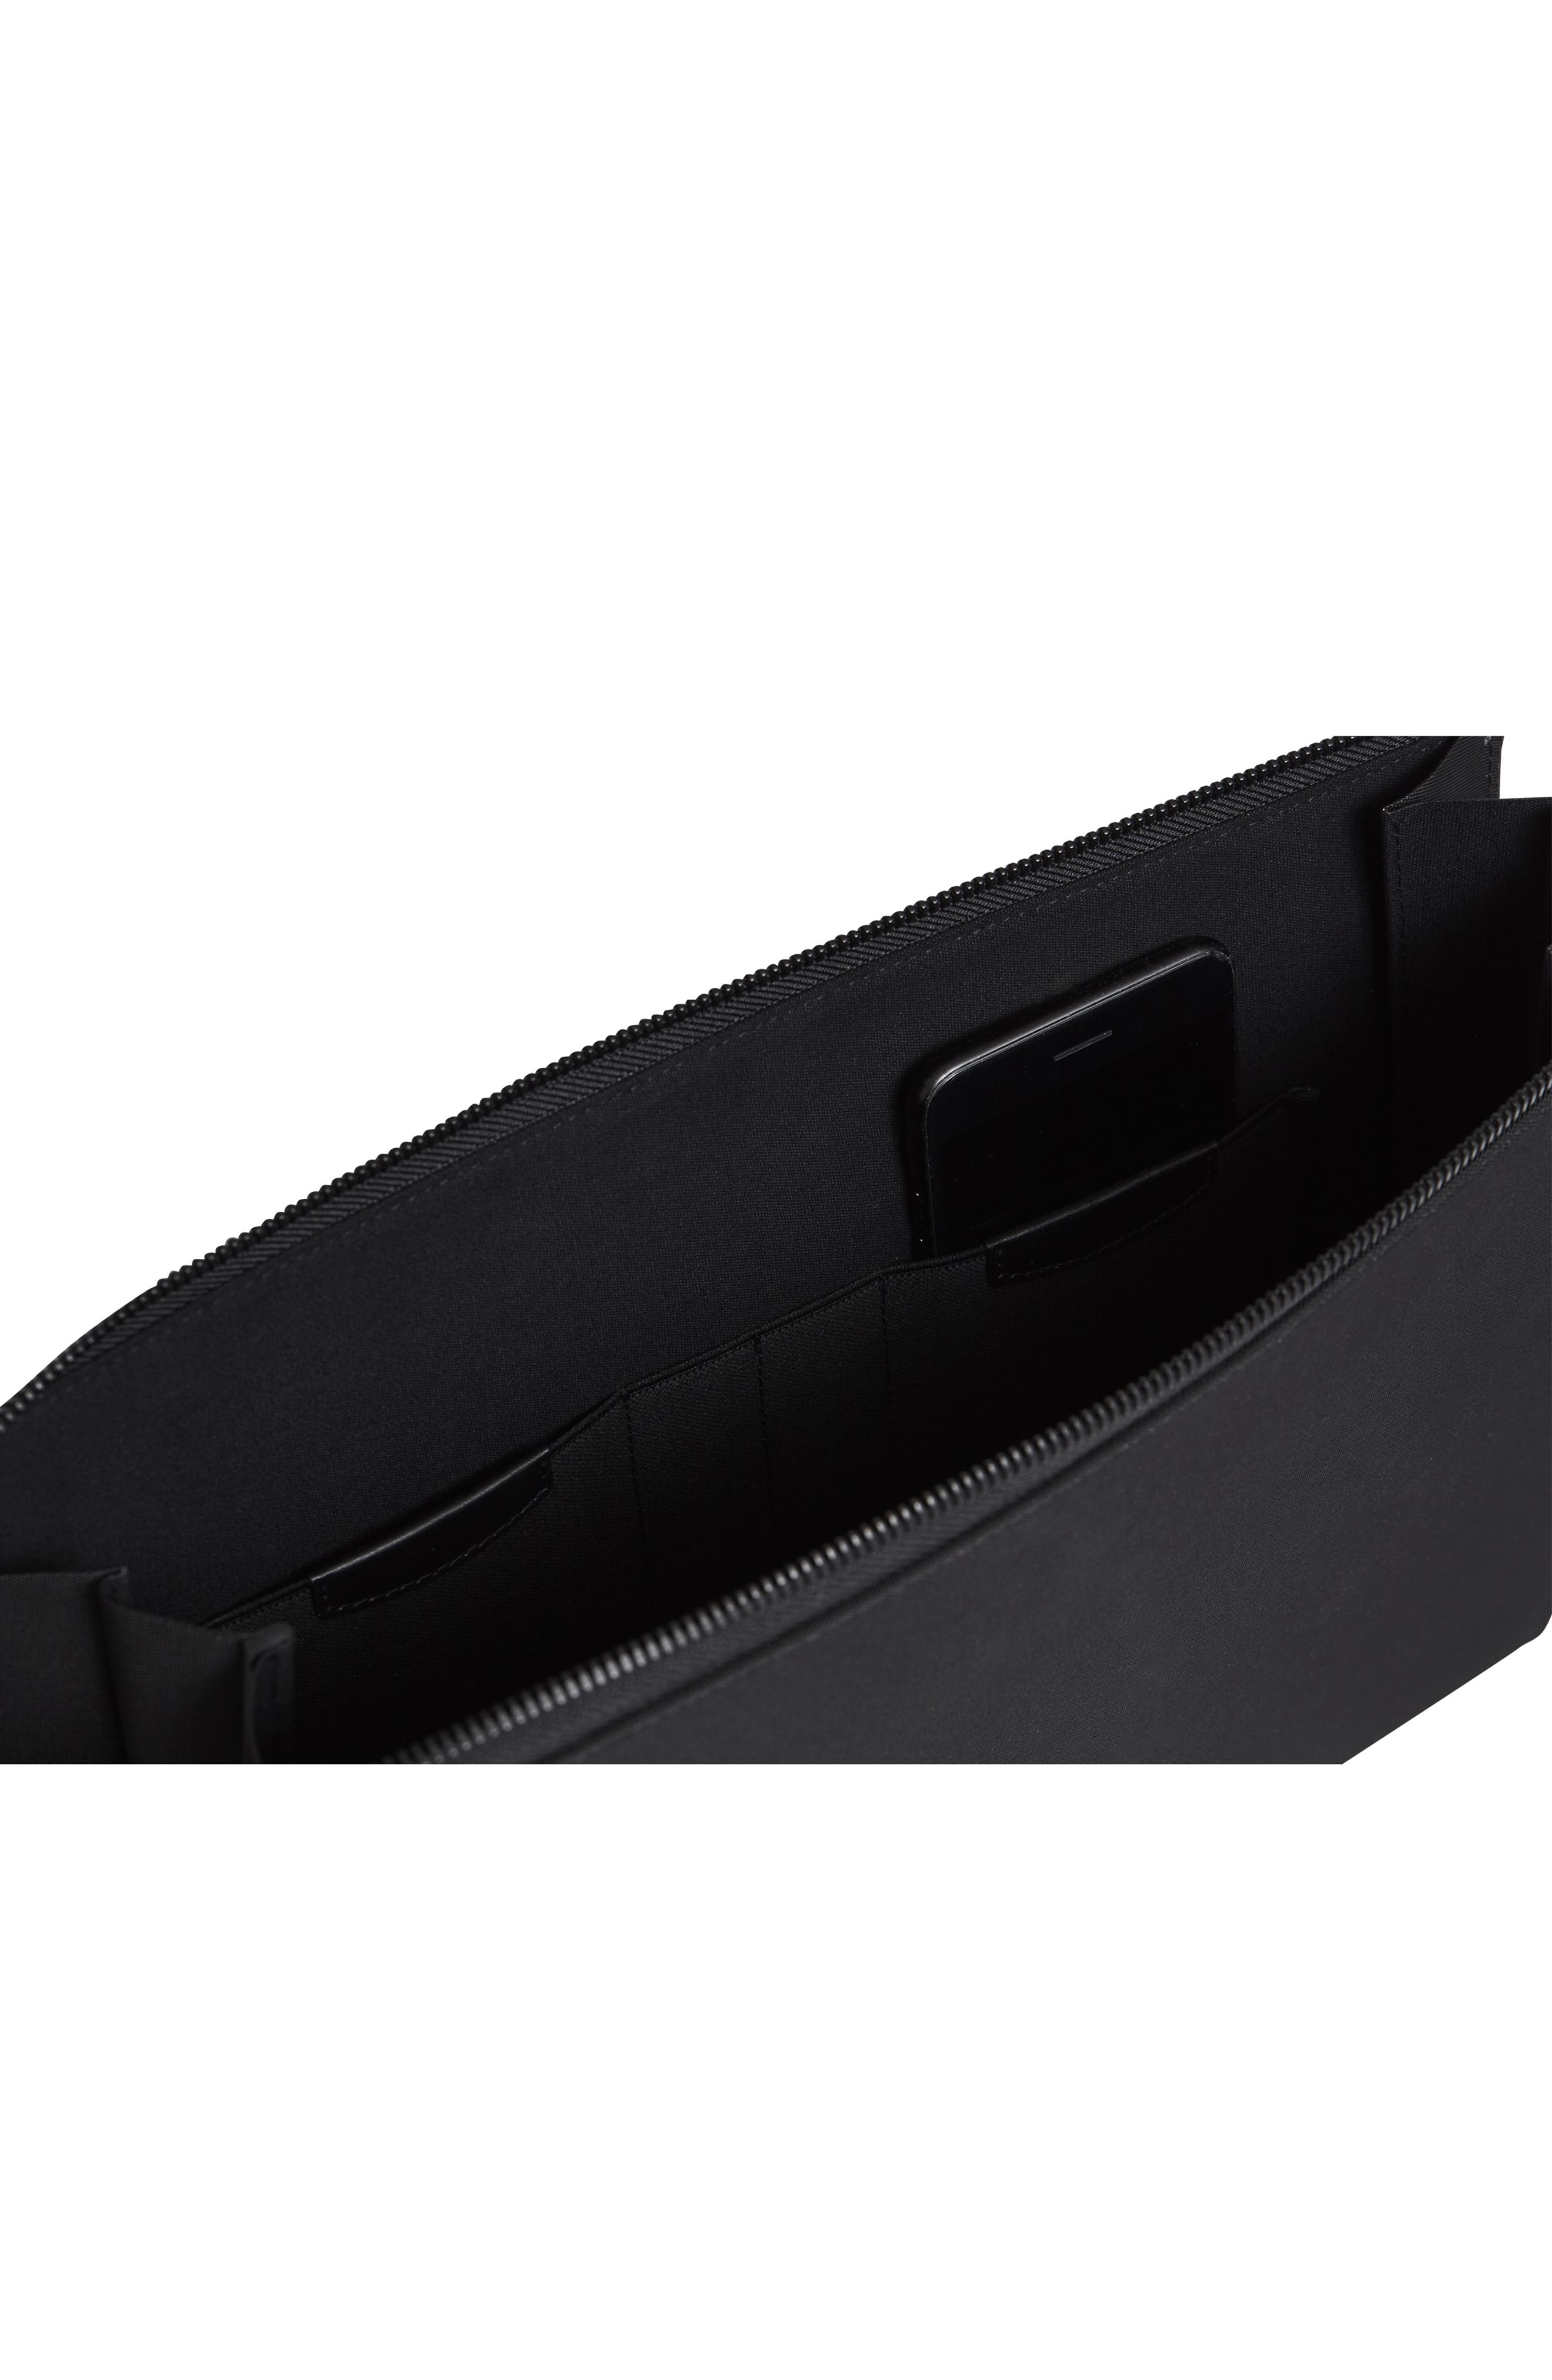 Portfolio Case,                             Alternate thumbnail 8, color,                             BLACK NYLON/ BLACK LEATHER